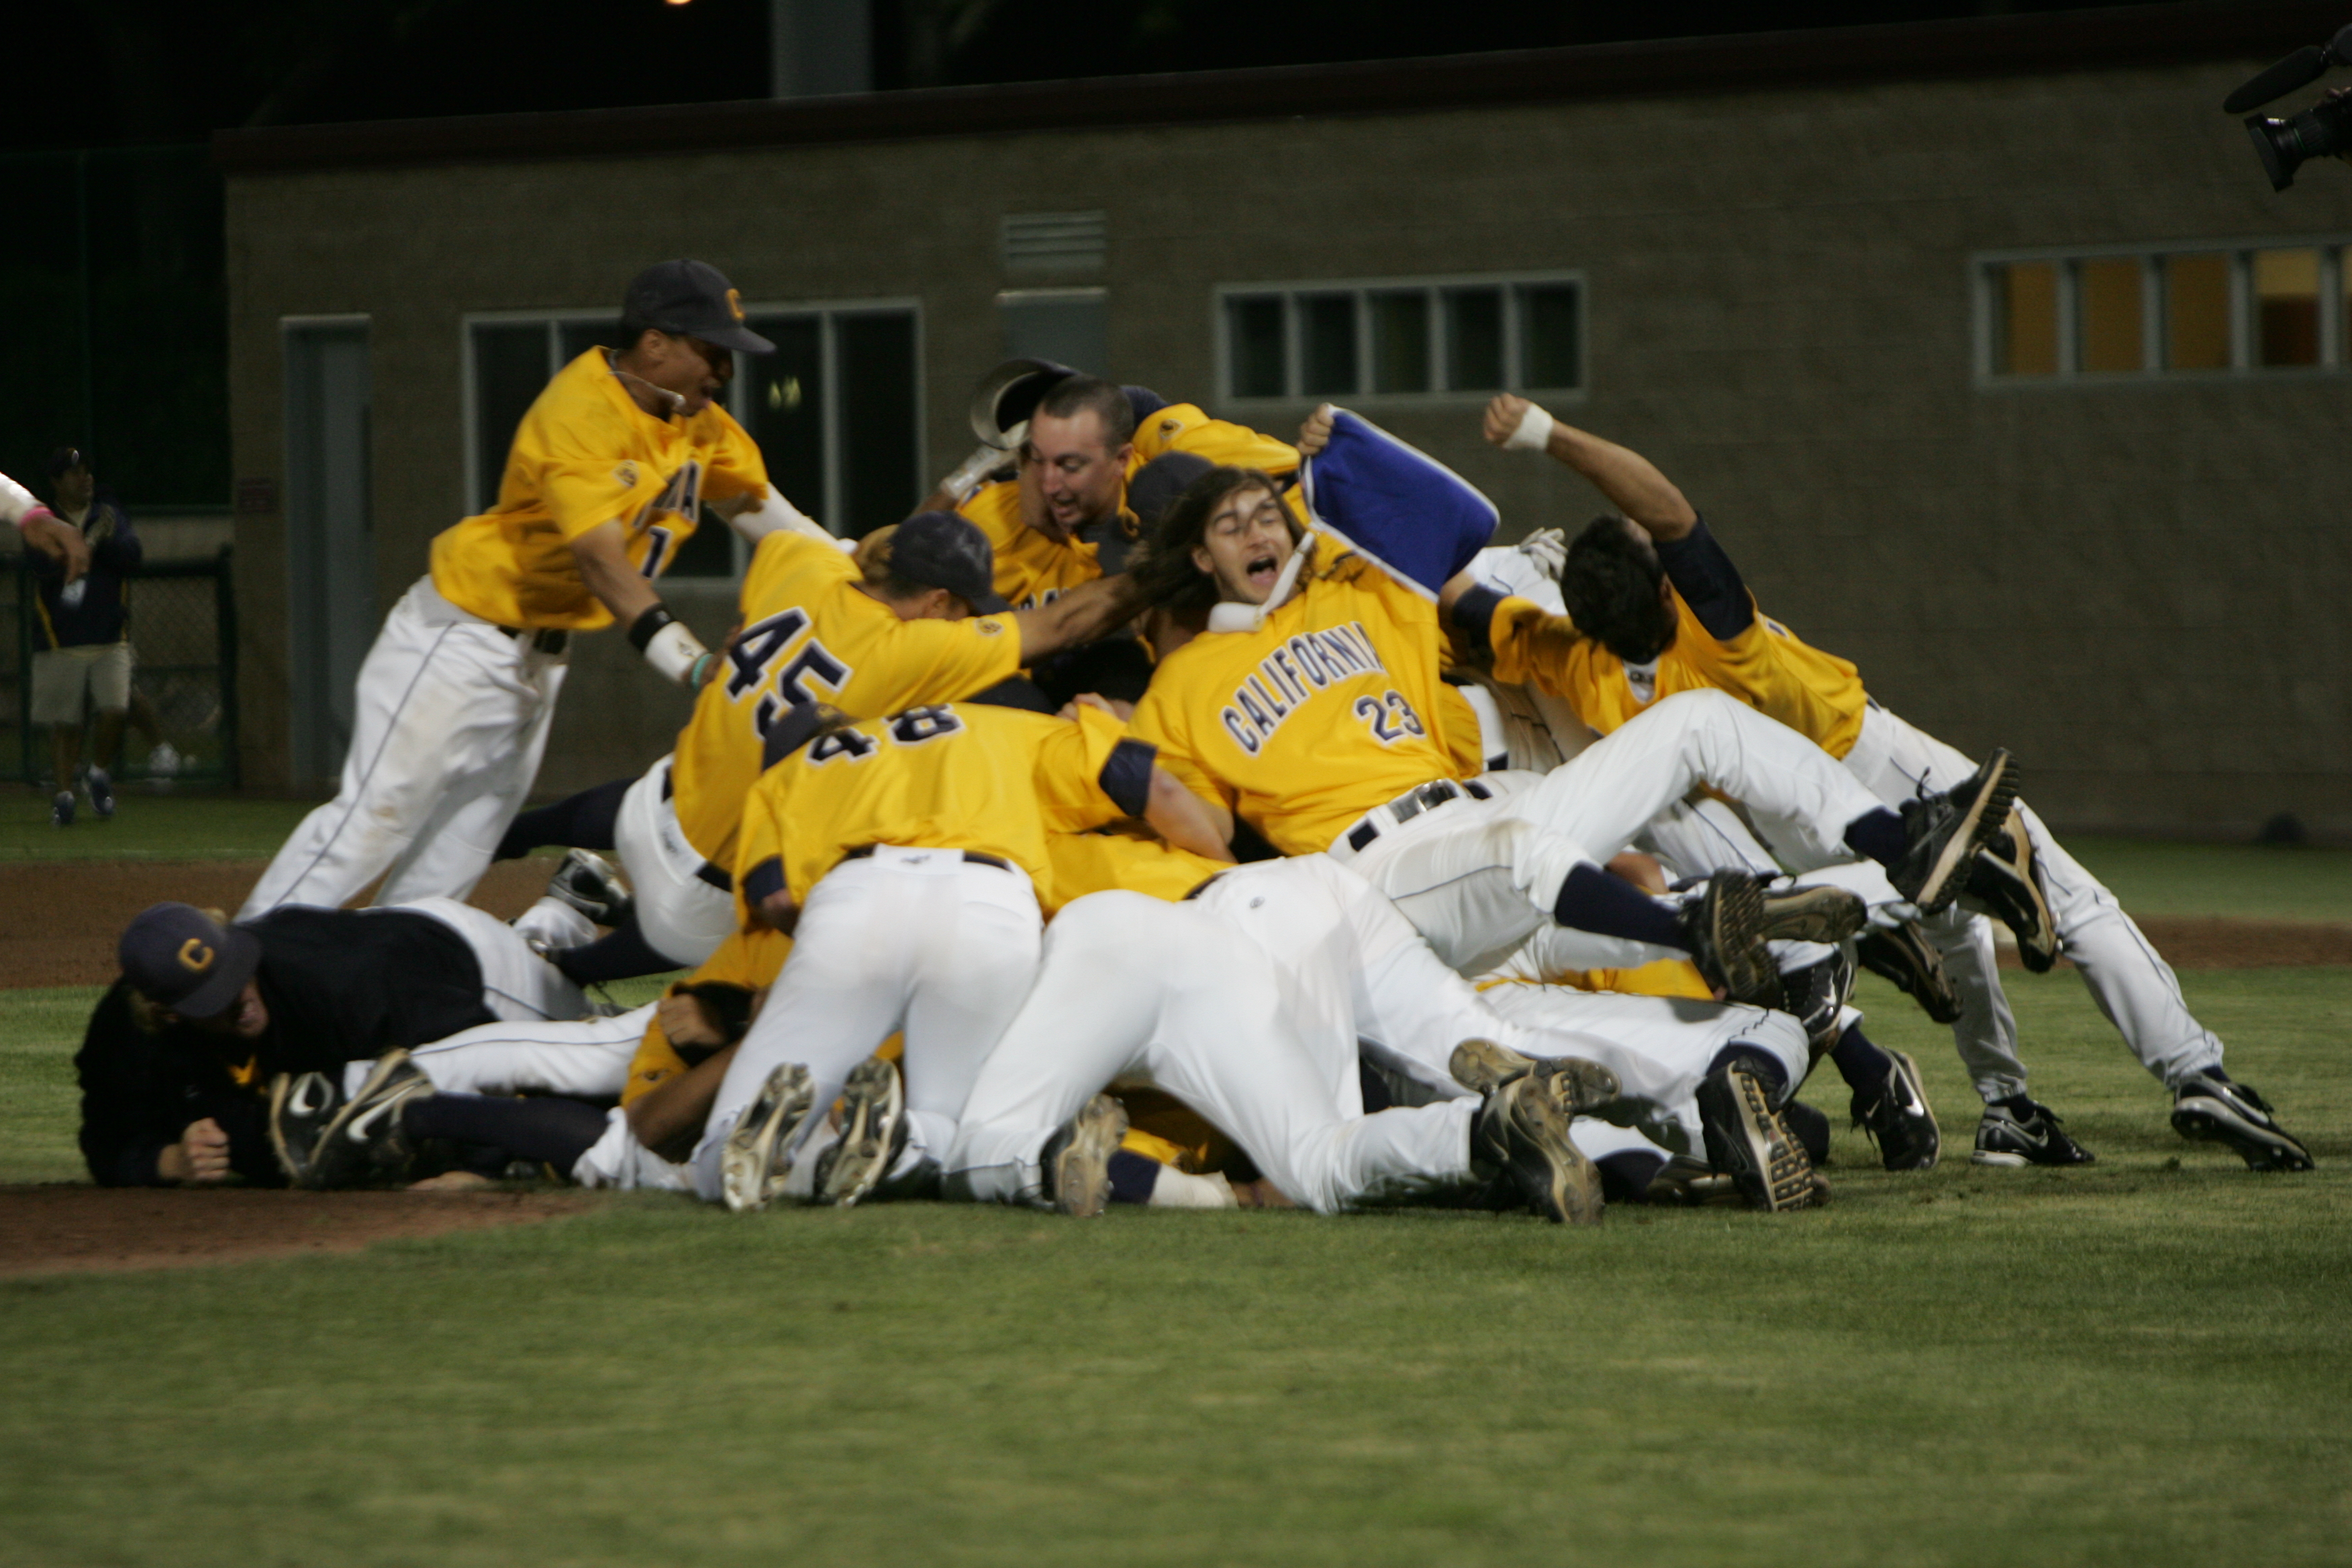 The Cal baseball team celebrates after sweeping Dallas Baptist to earn a trip to the College World Series in Omaha, Neb.